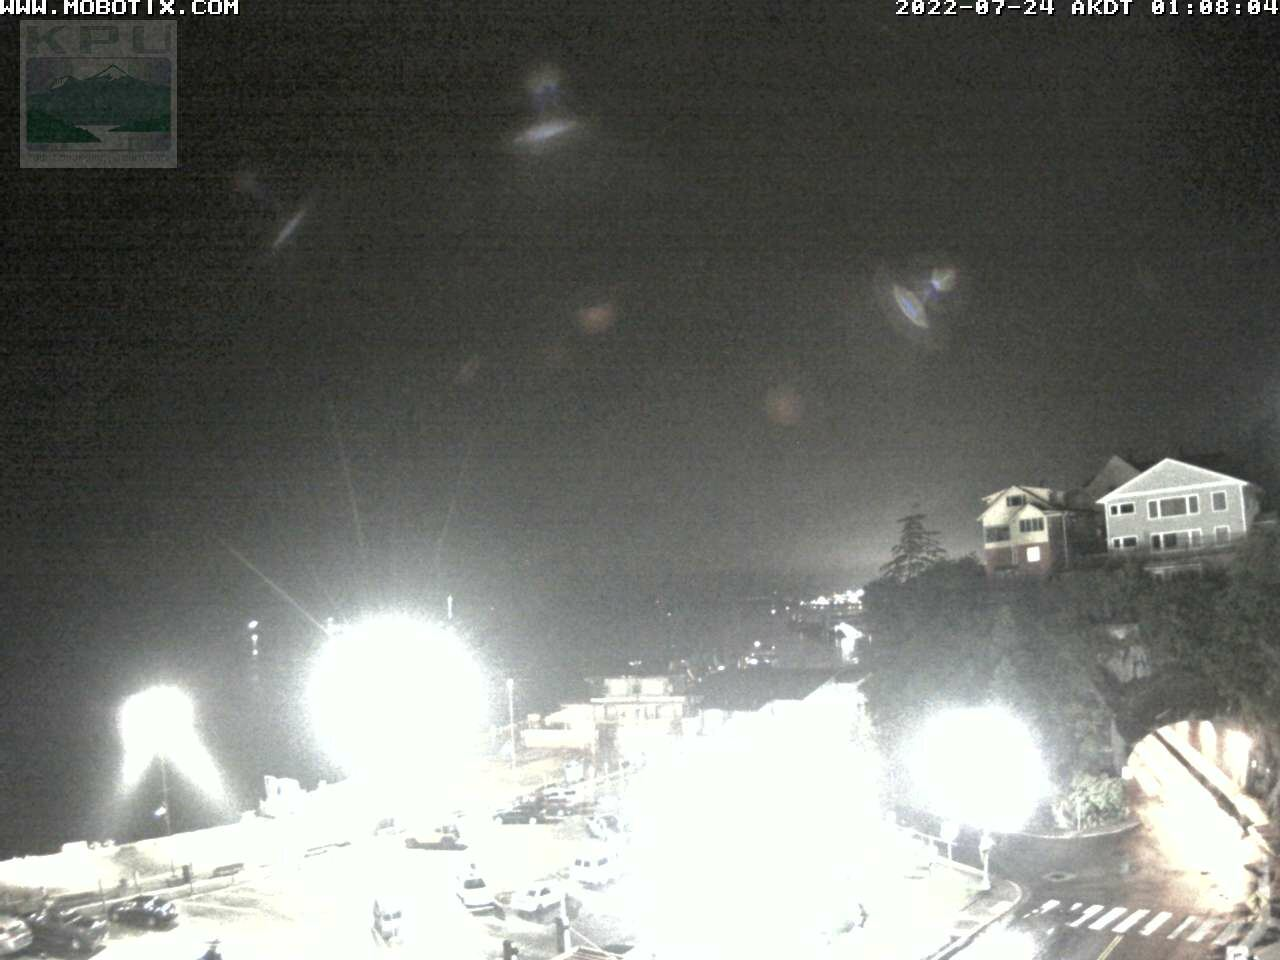 Current Ketchikan Webcam #2 Mega-View Image